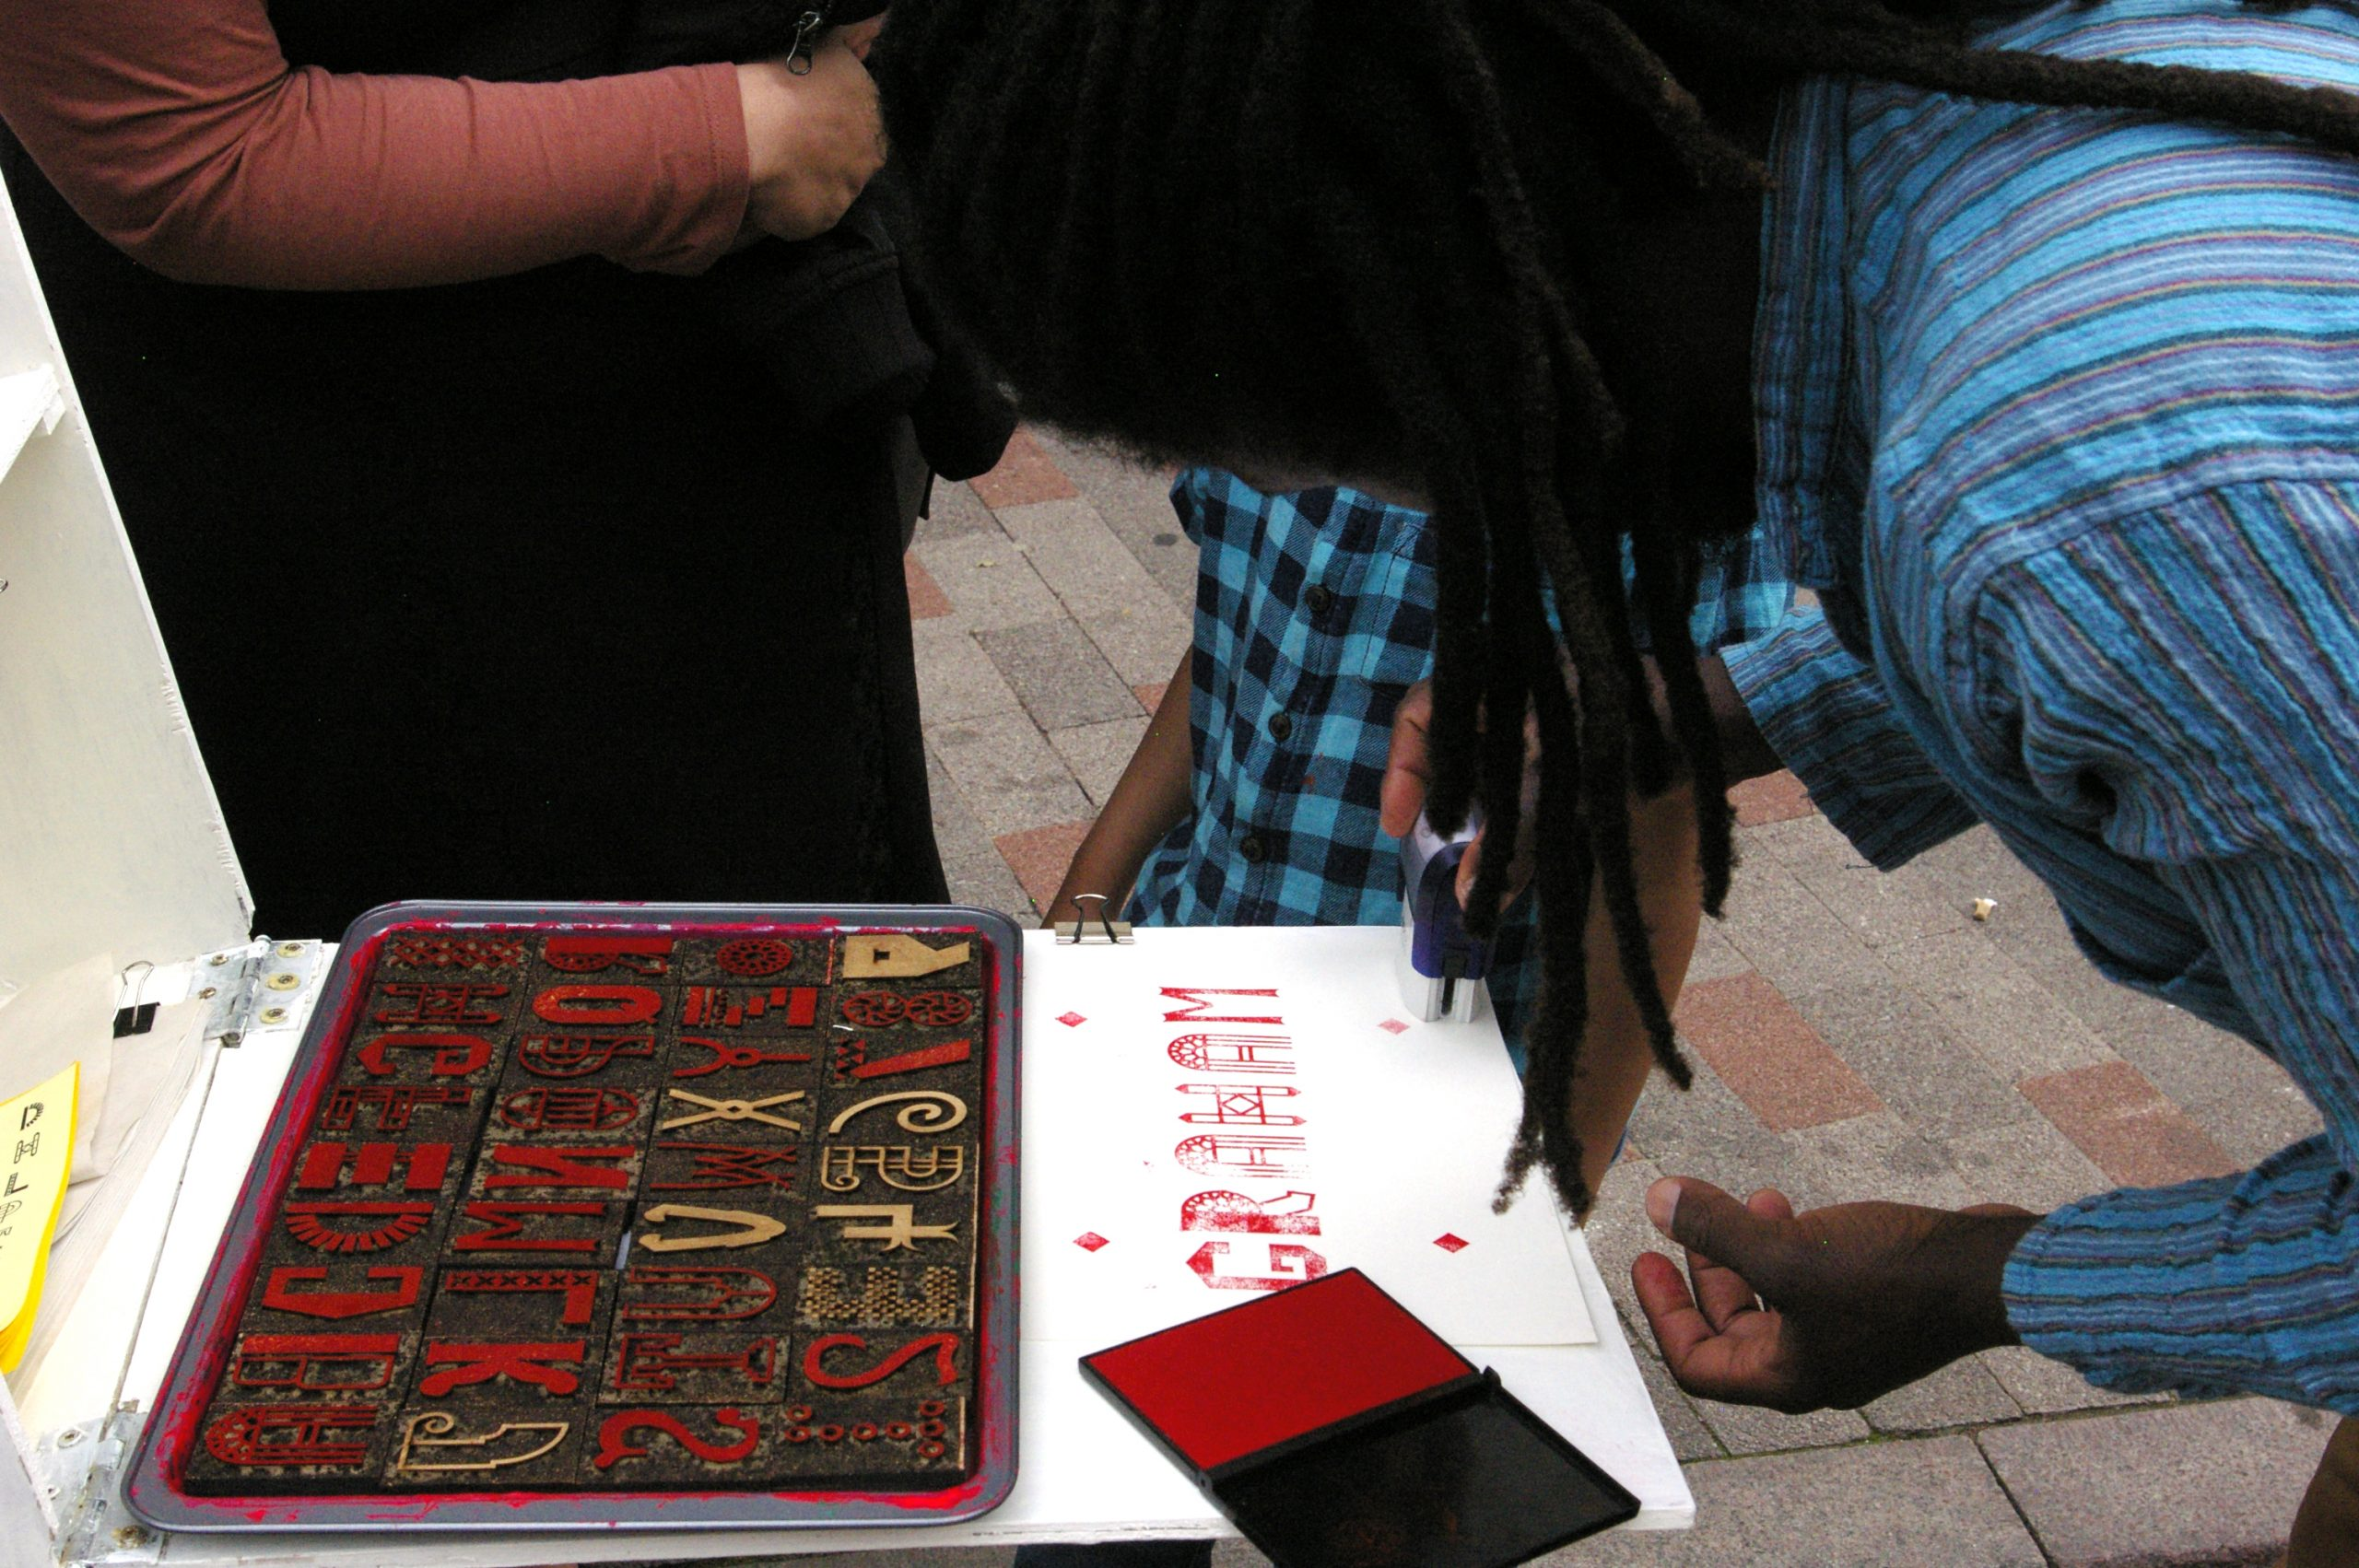 Leicester Lettering Event in Leicester Greyfriars